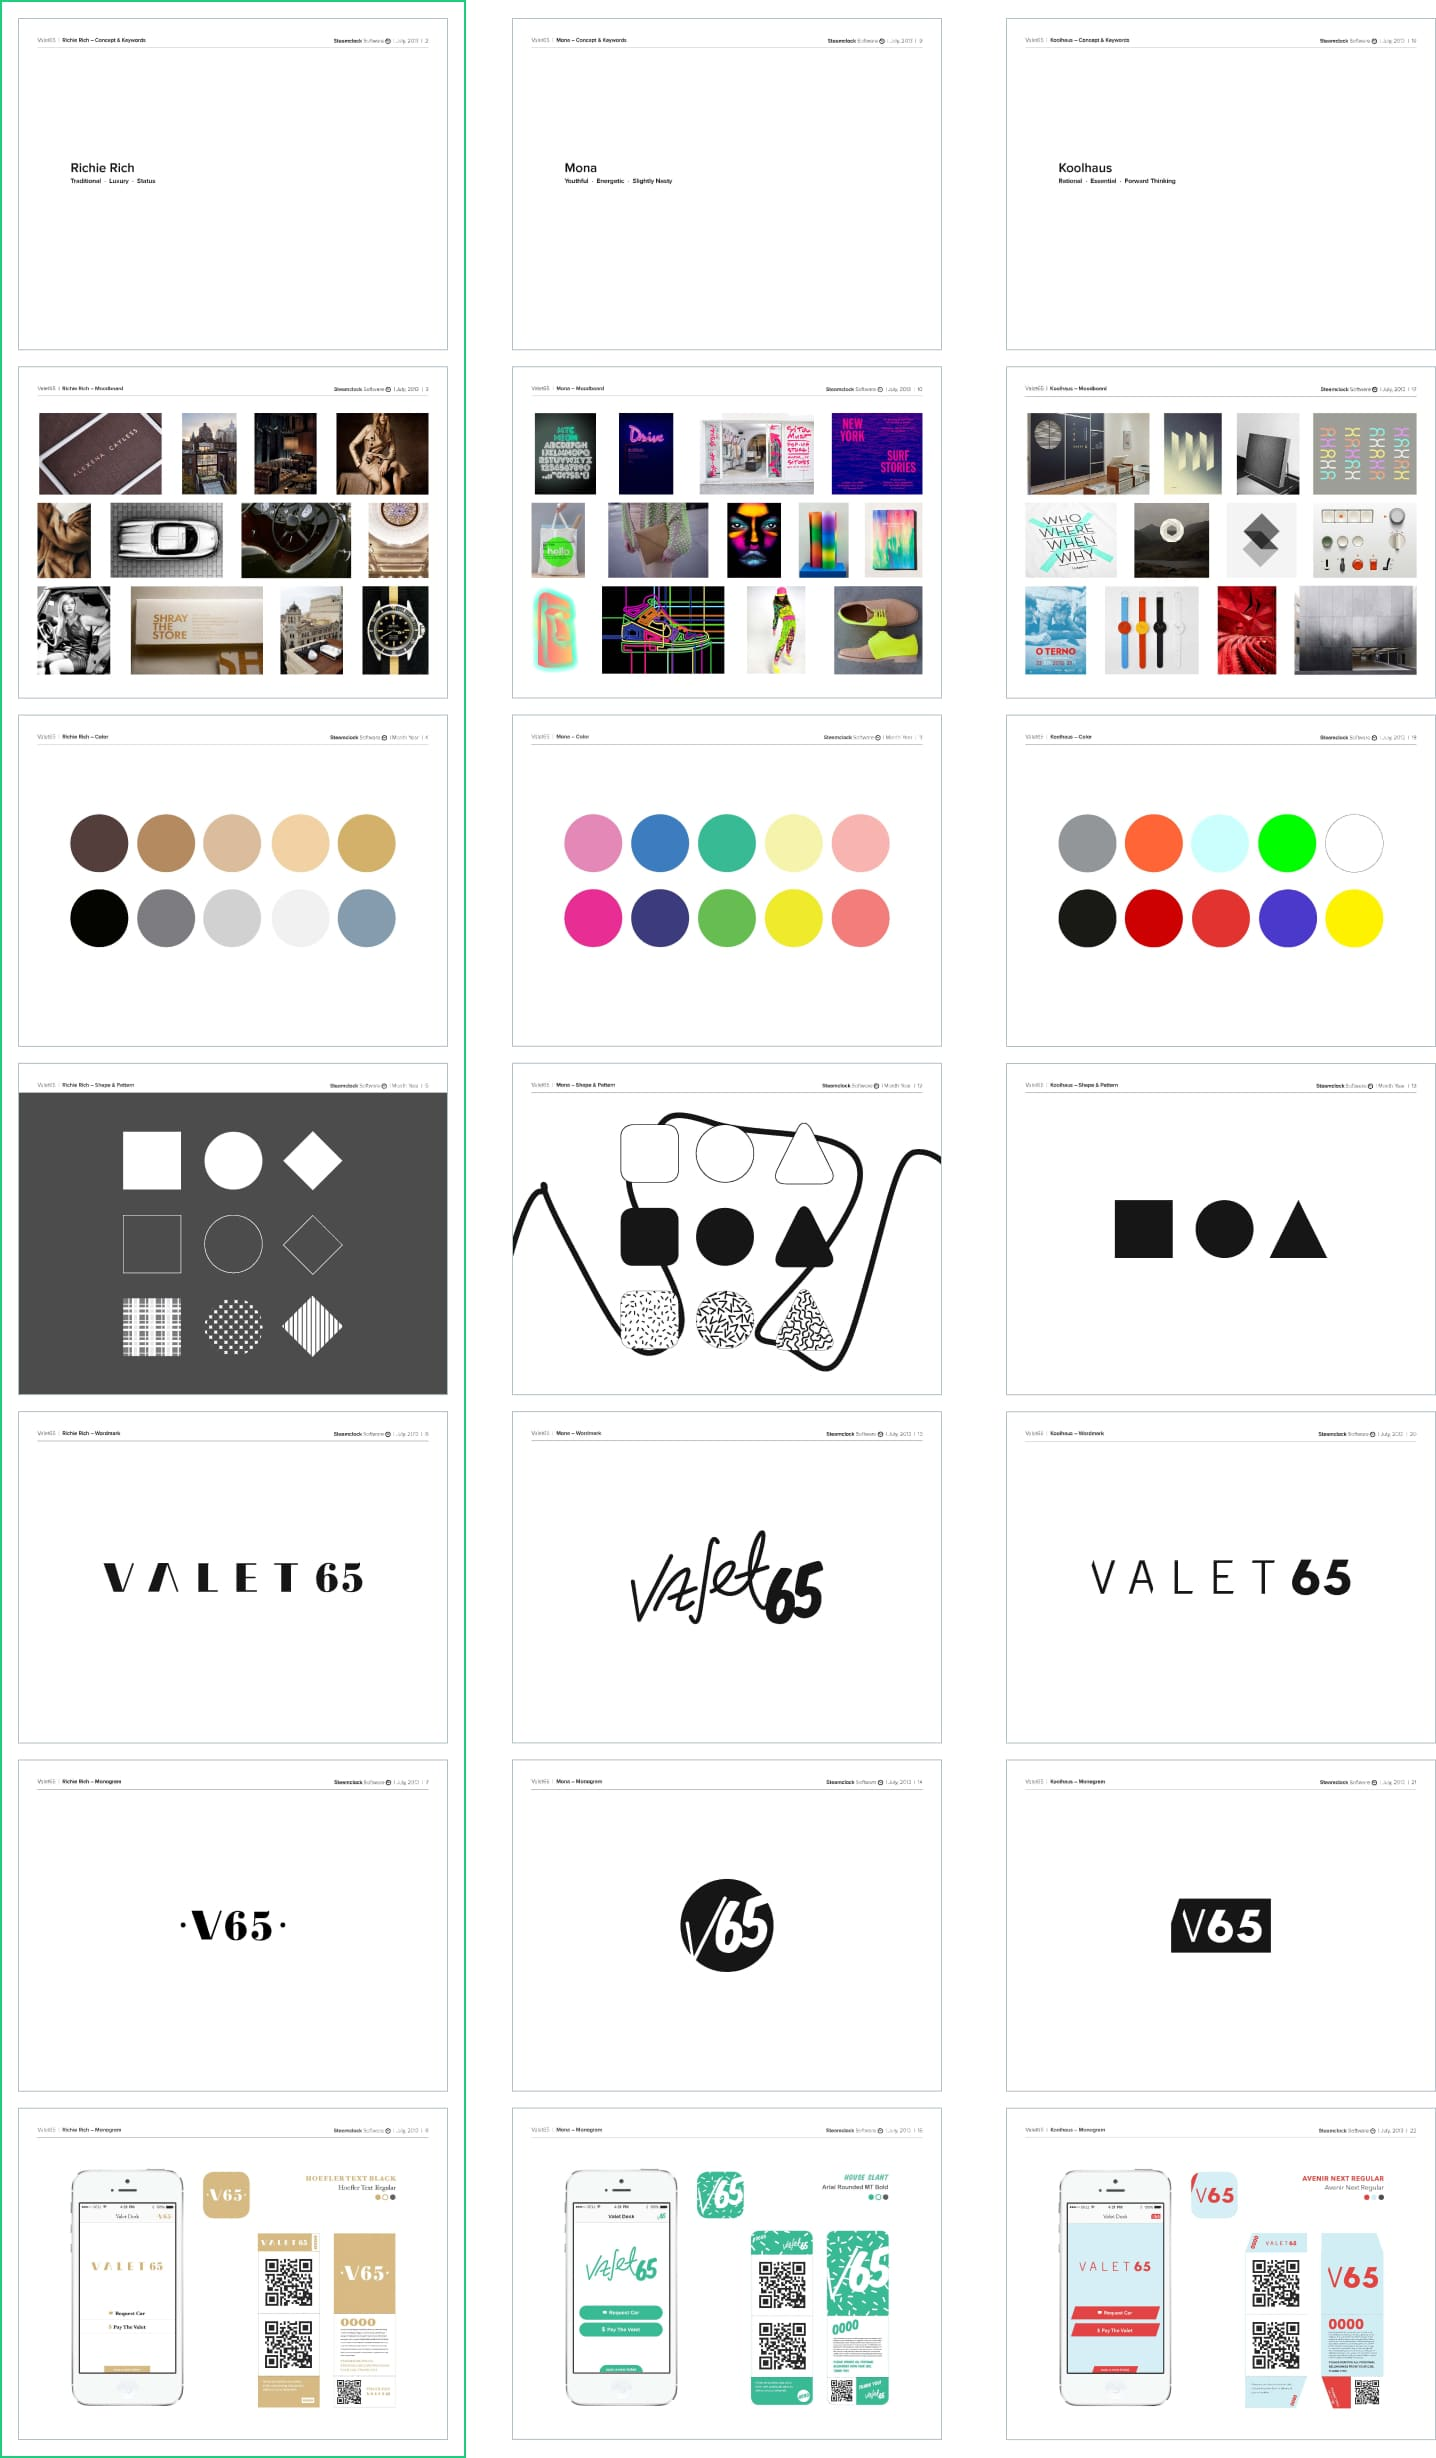 The 3 identity and branding options I developed for Valet65 to choose from.